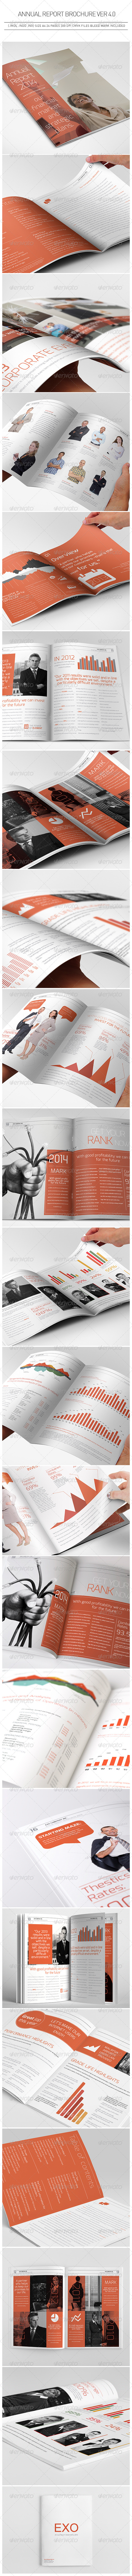 Annual Report Brochure Ver 4.0 - Informational Brochures